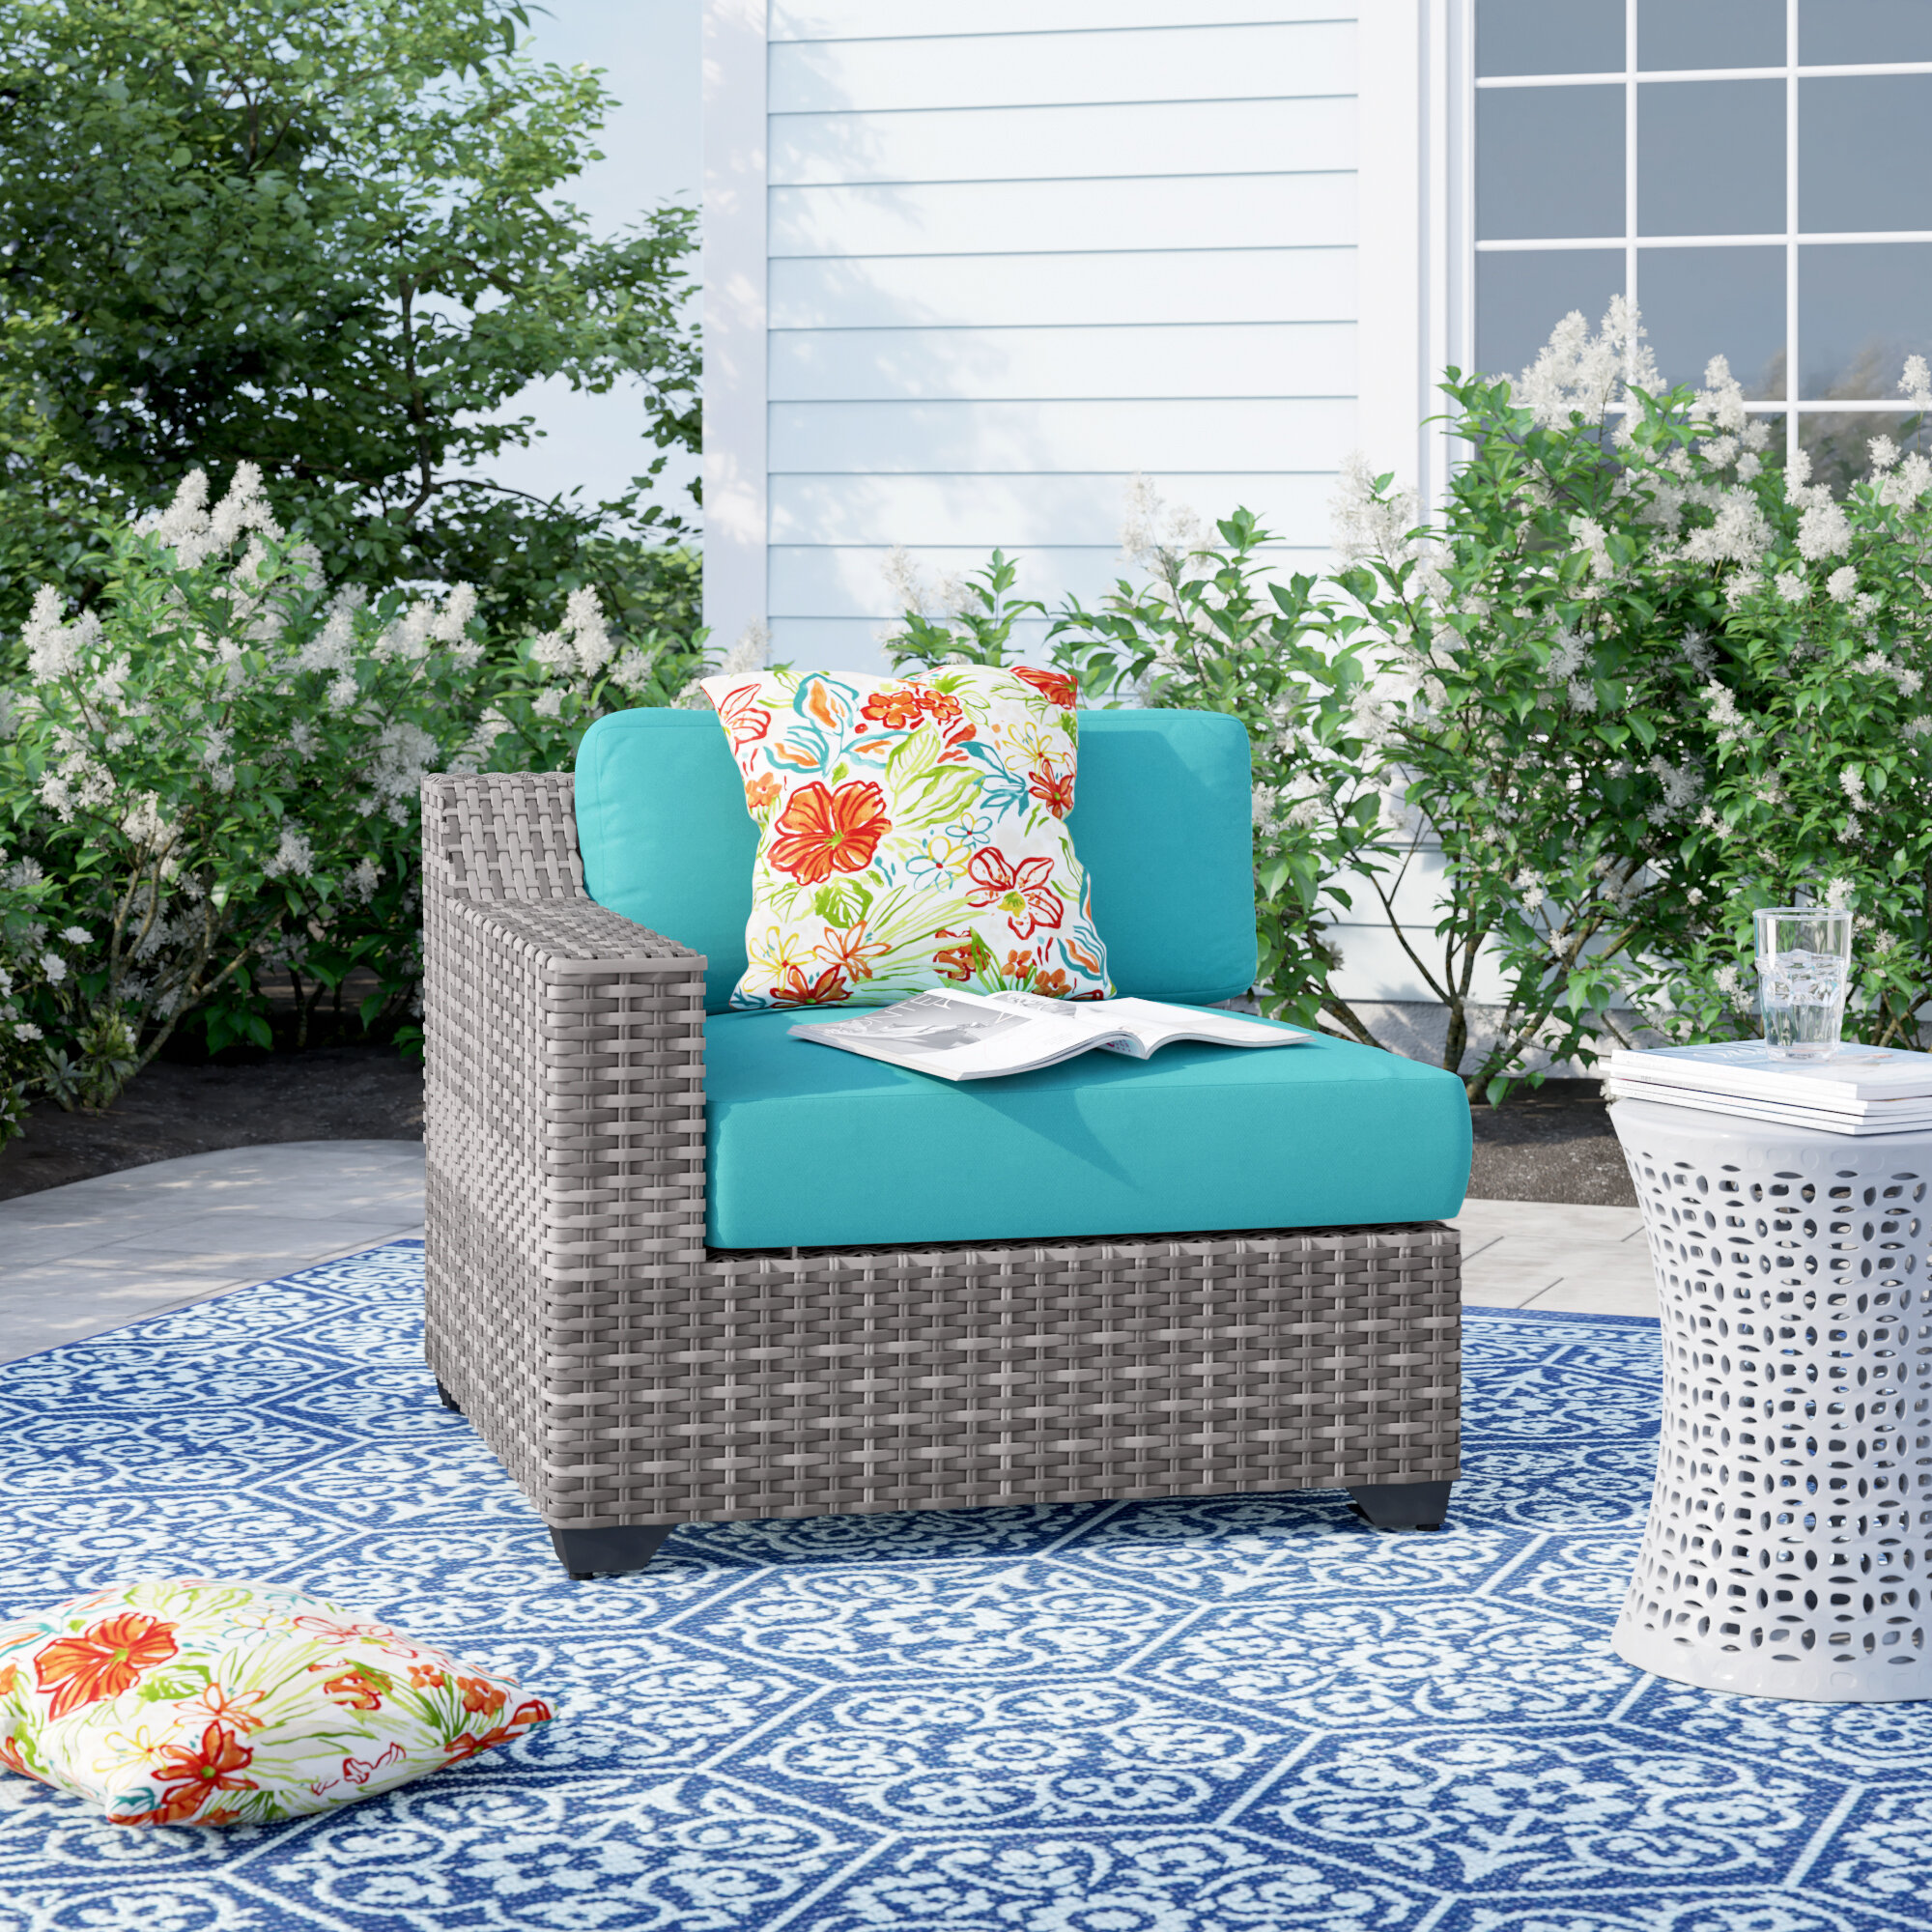 Peachy Falmouth Right Arm Patio Chair With Cushions Pdpeps Interior Chair Design Pdpepsorg